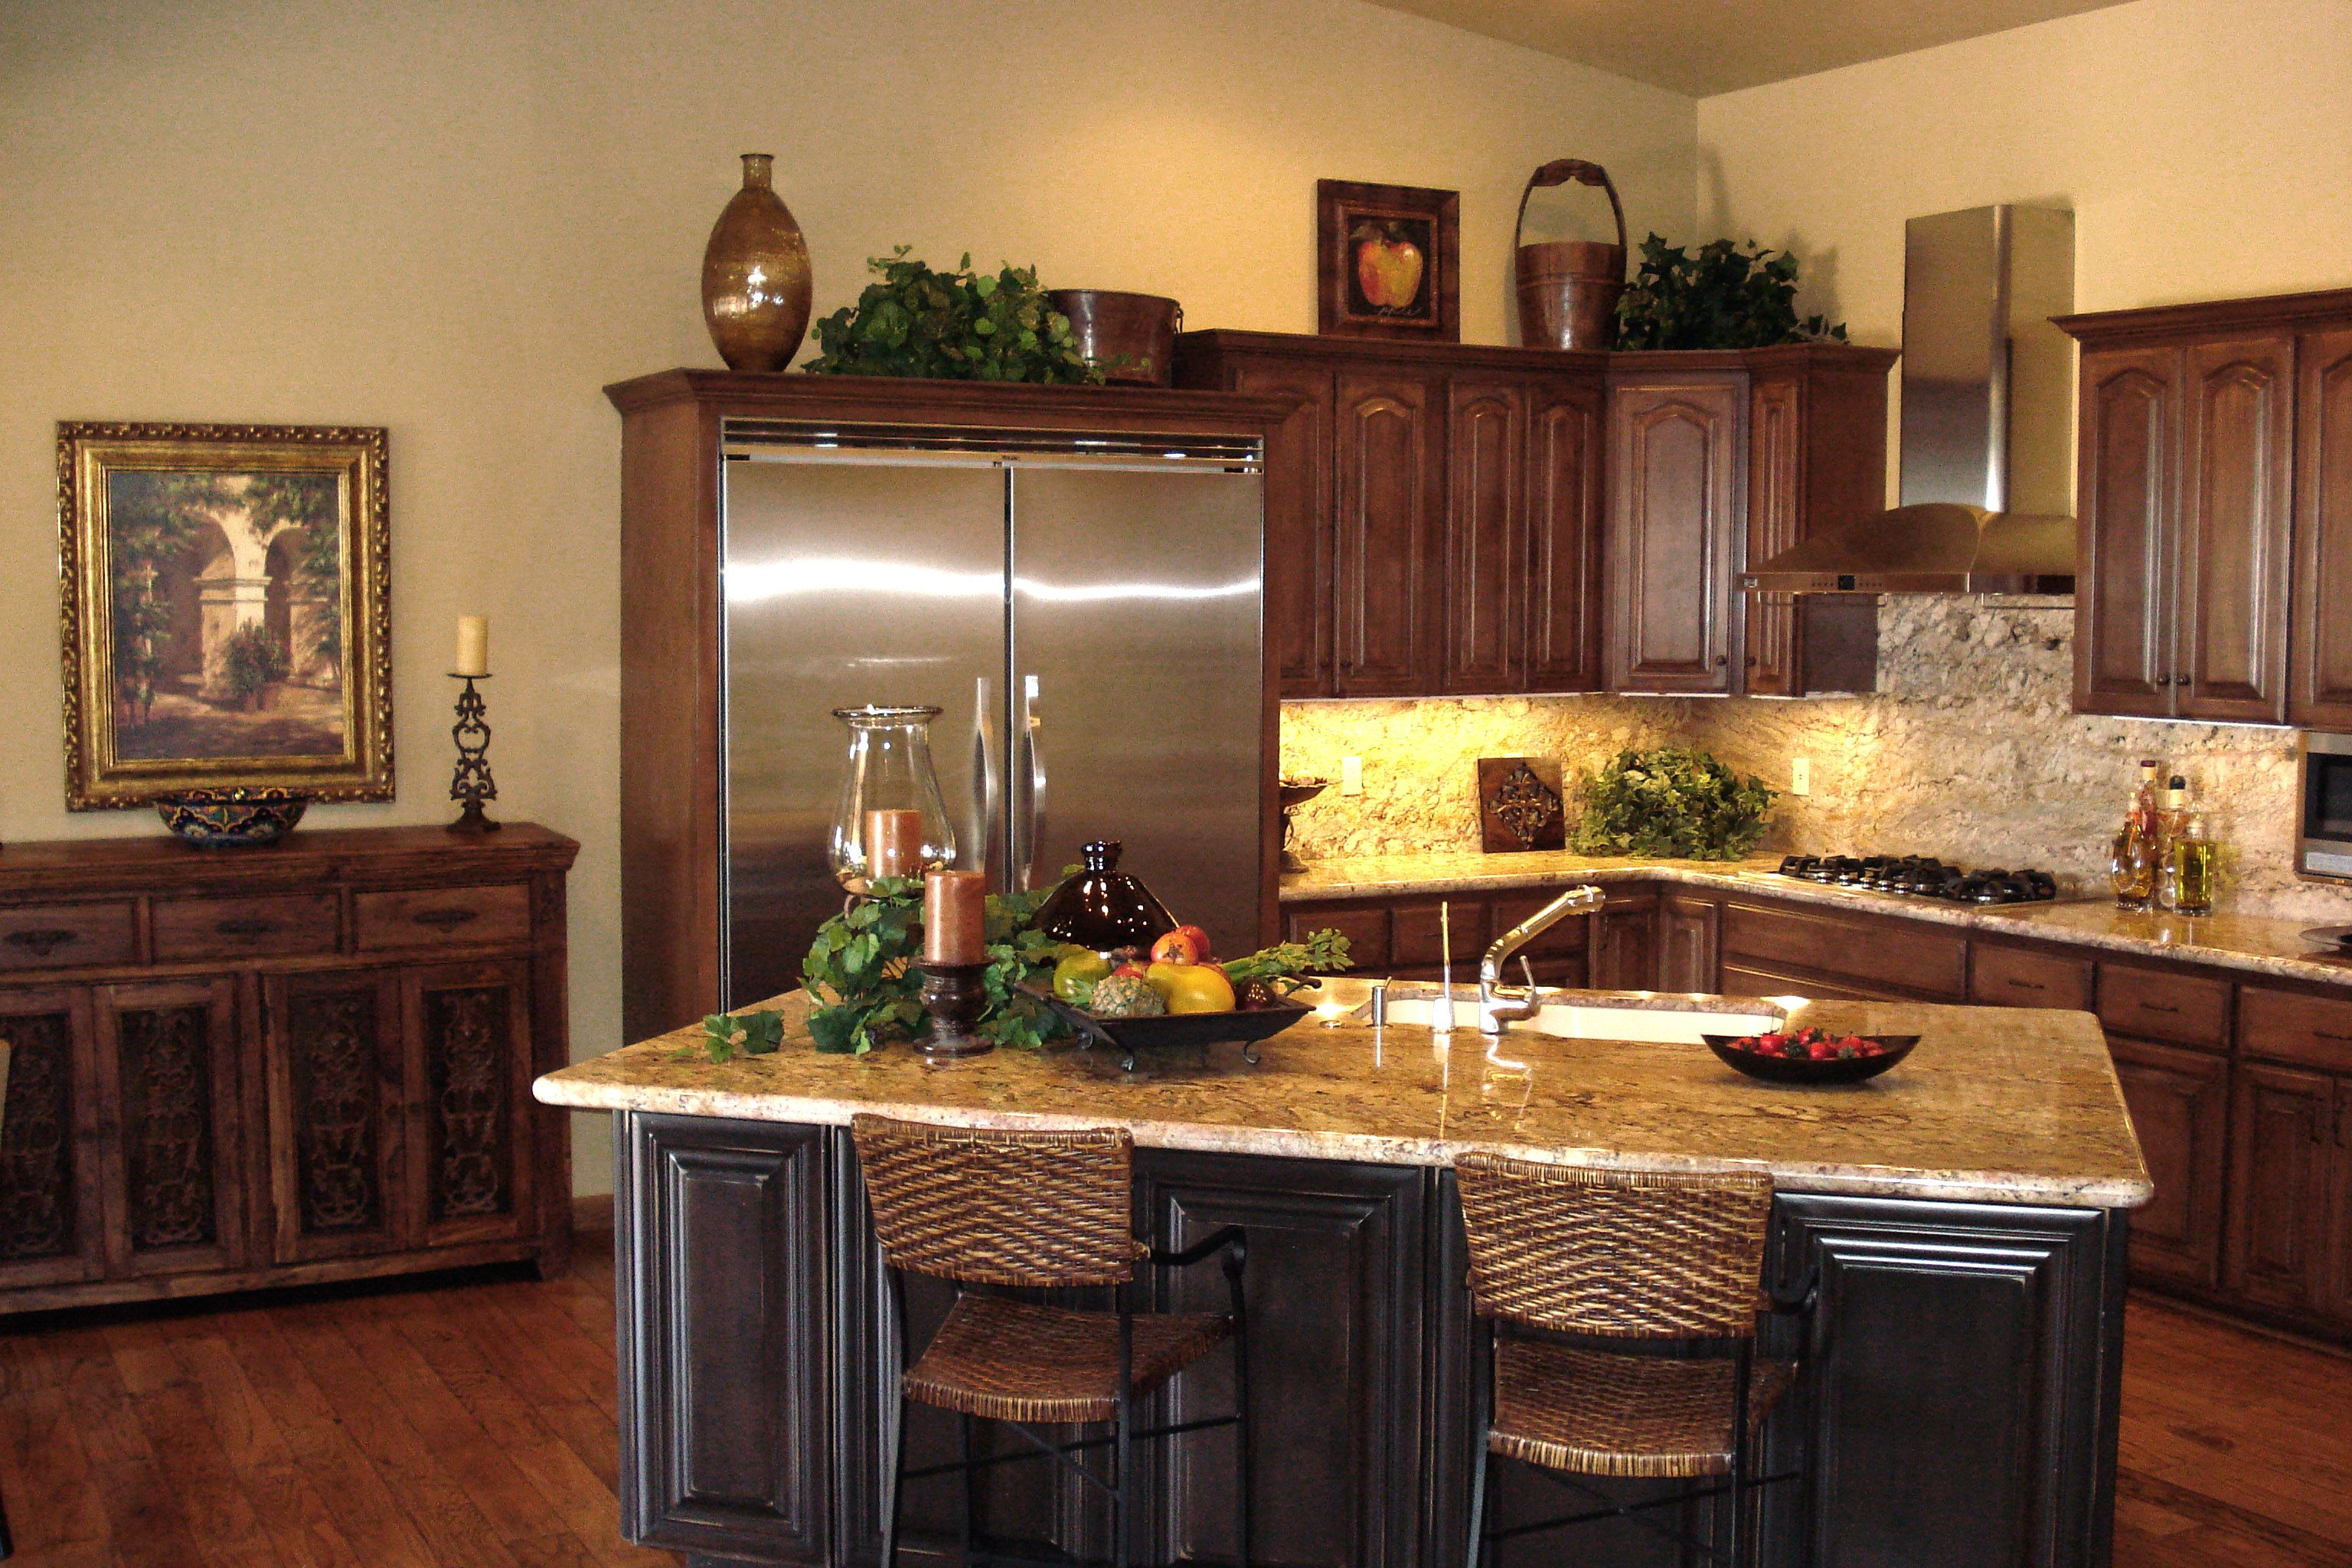 Home Staging By Foothills Design And Development, Inc. In Tucson, AZ